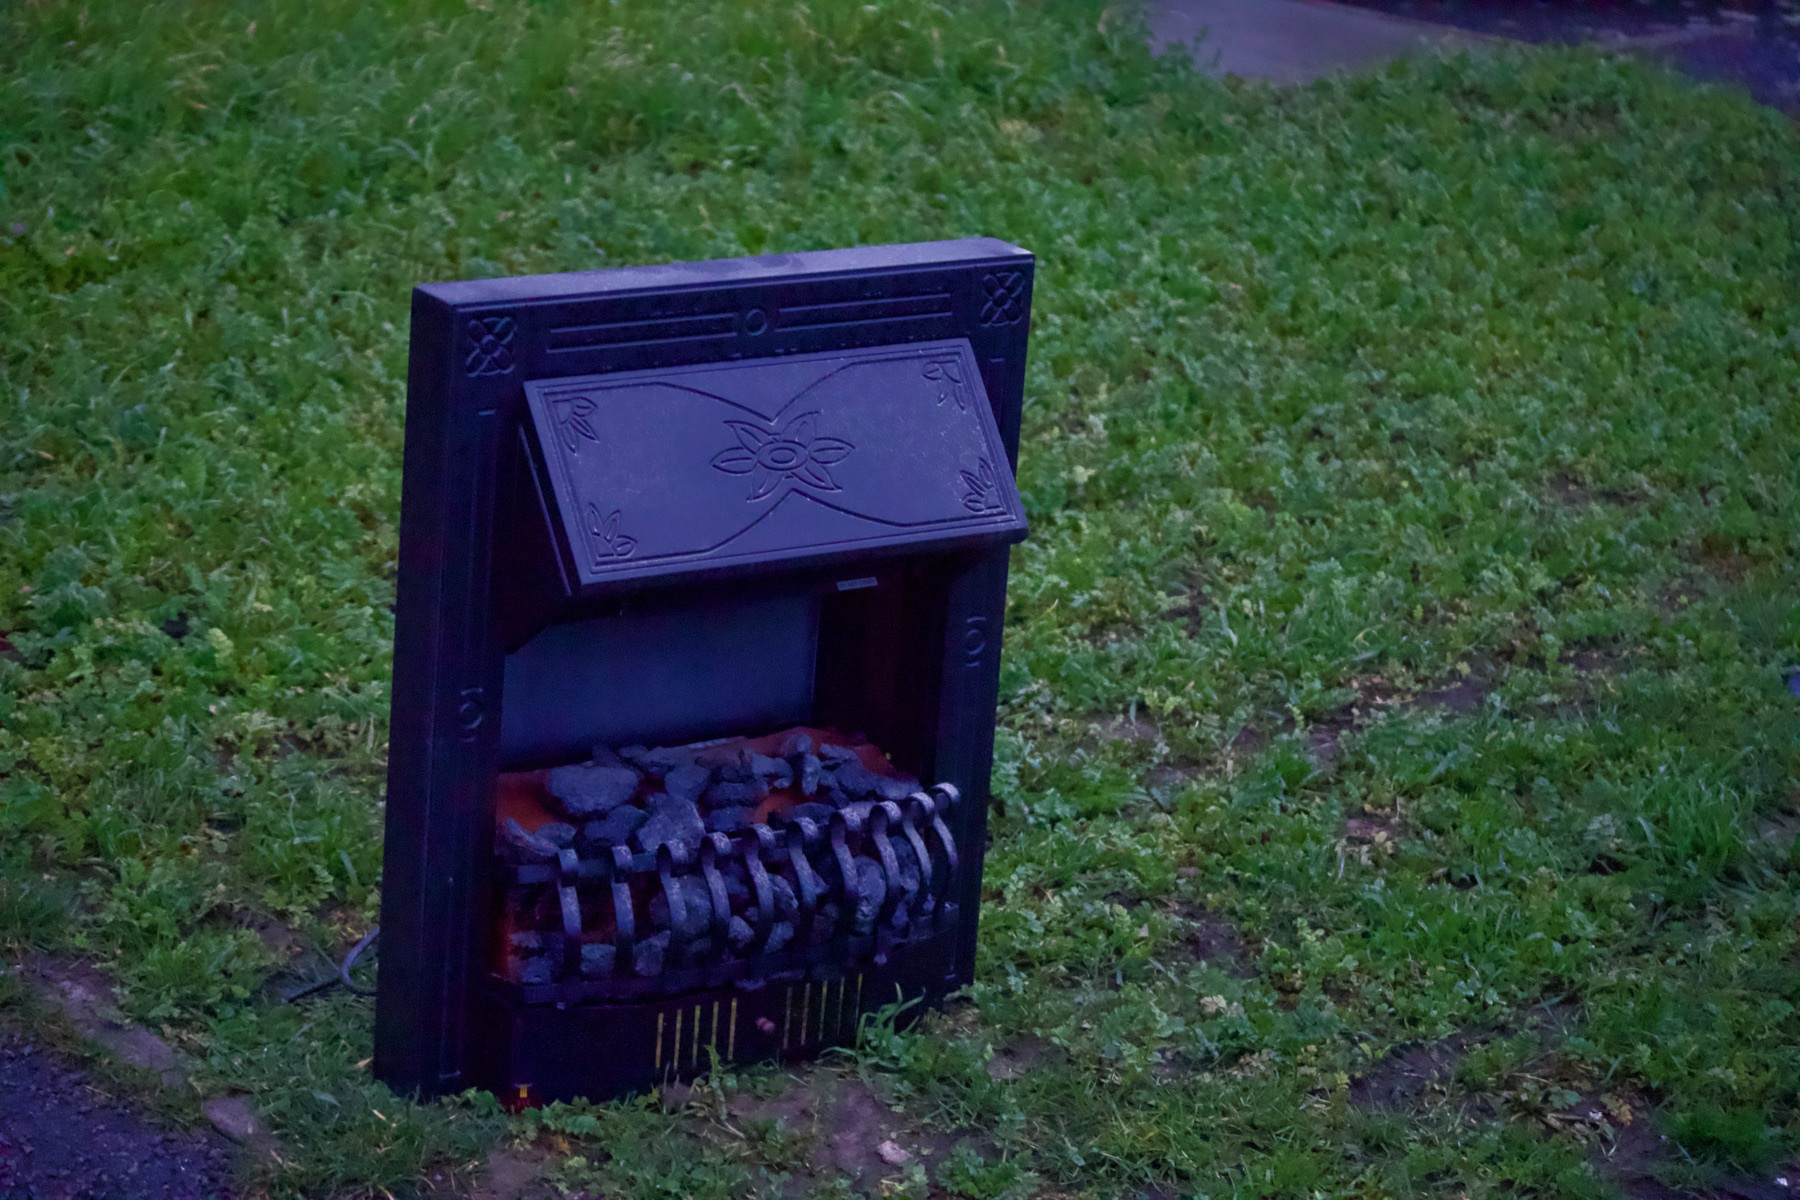 A fireplace sitting on a lawn.